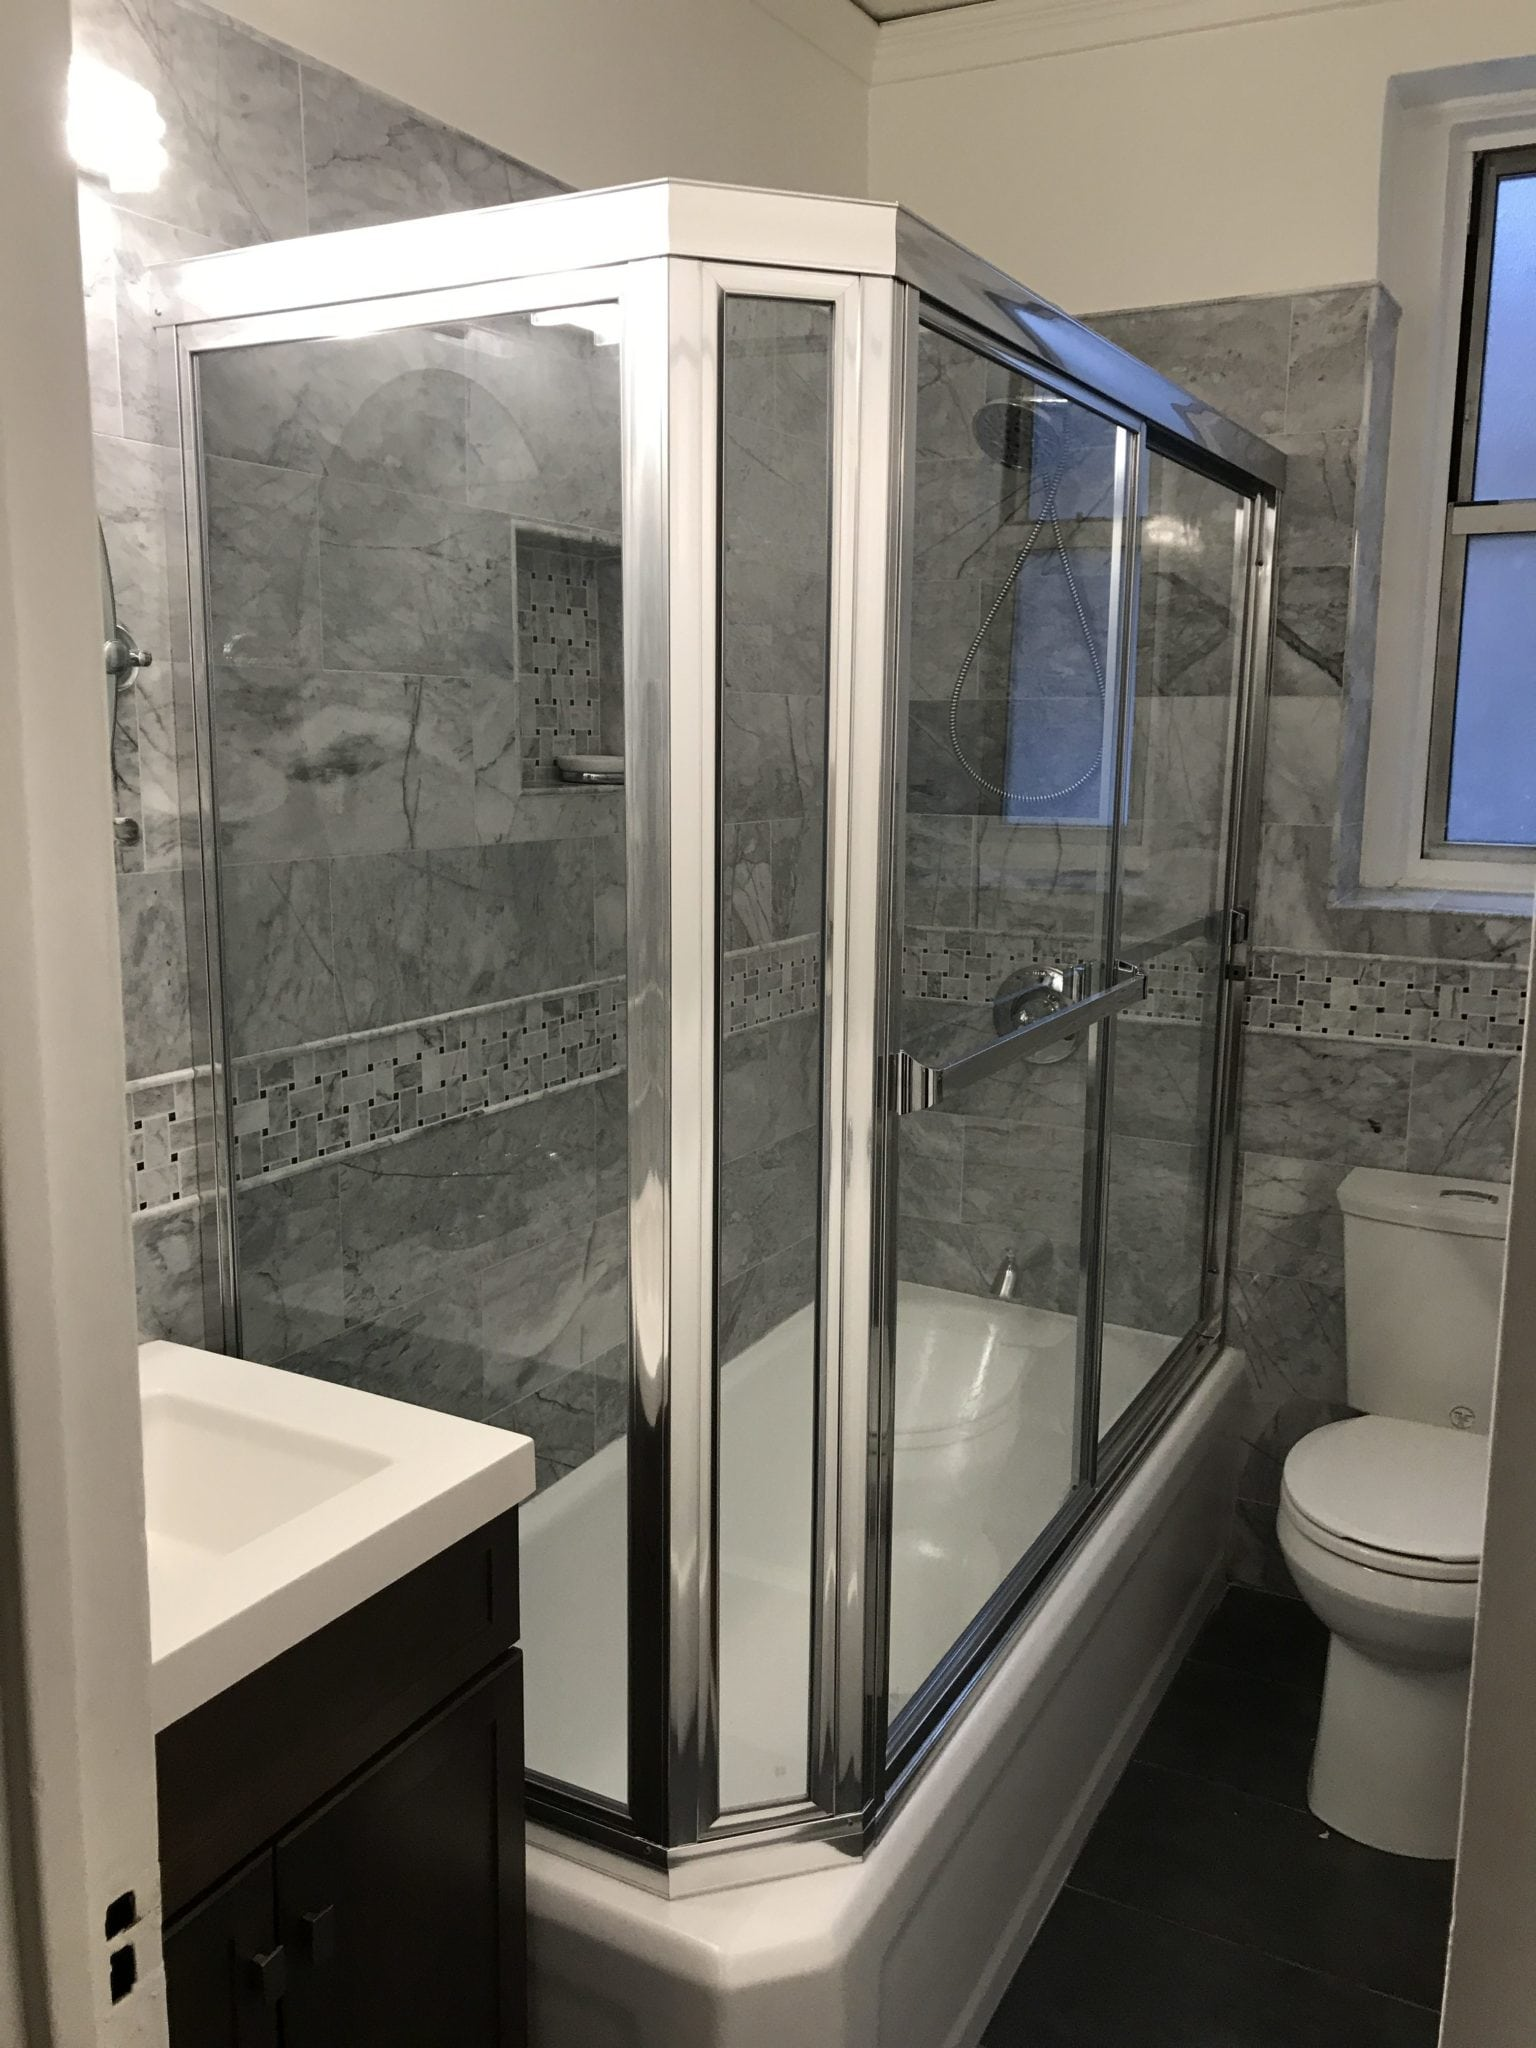 Framed Tub Neo Angle Tub Enclosure with Double Sliding Doors